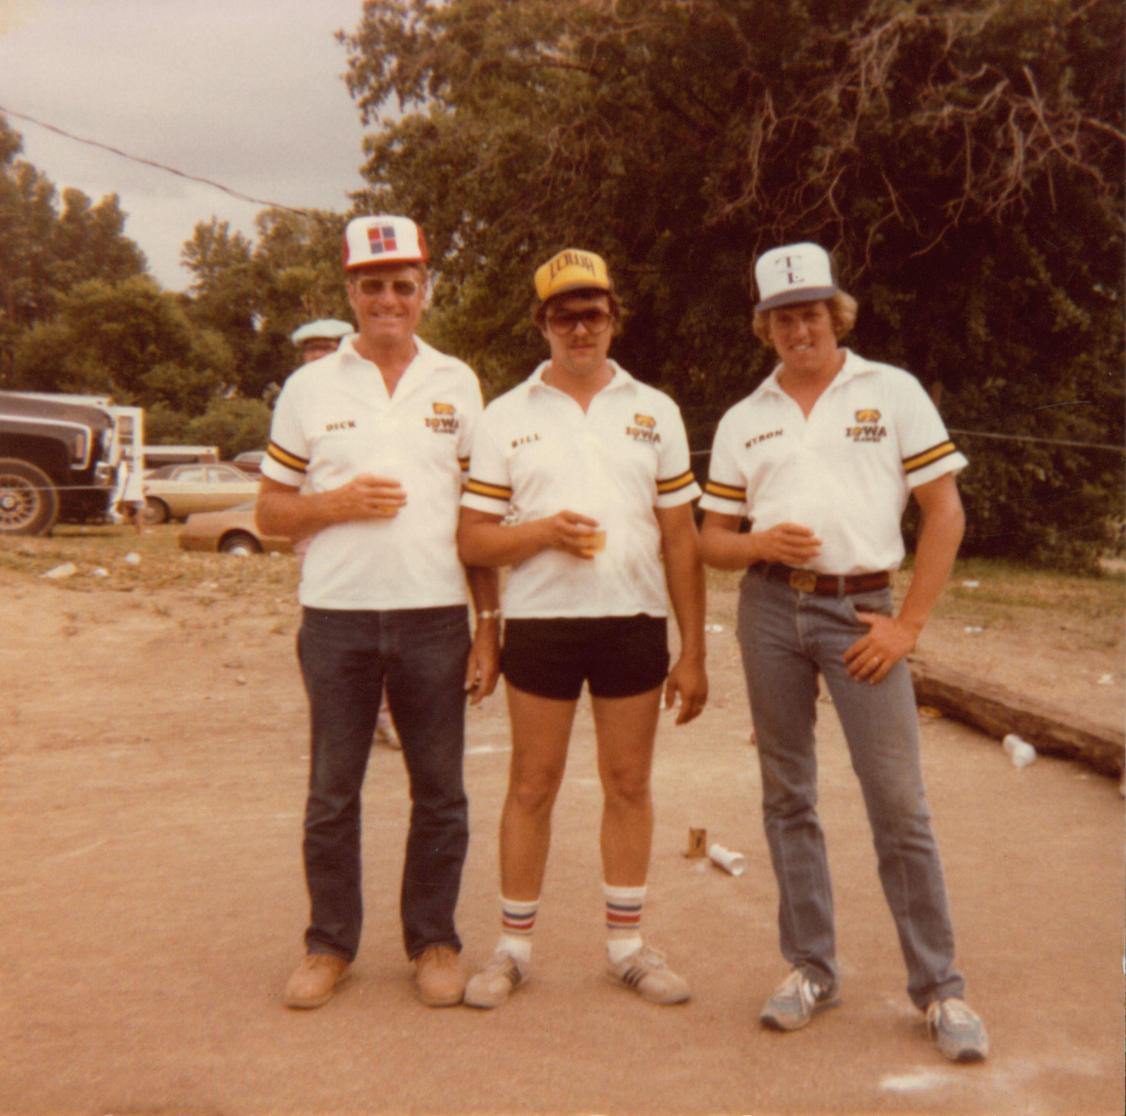 Dick Claeys and with teammates Bill and Myron in 1983